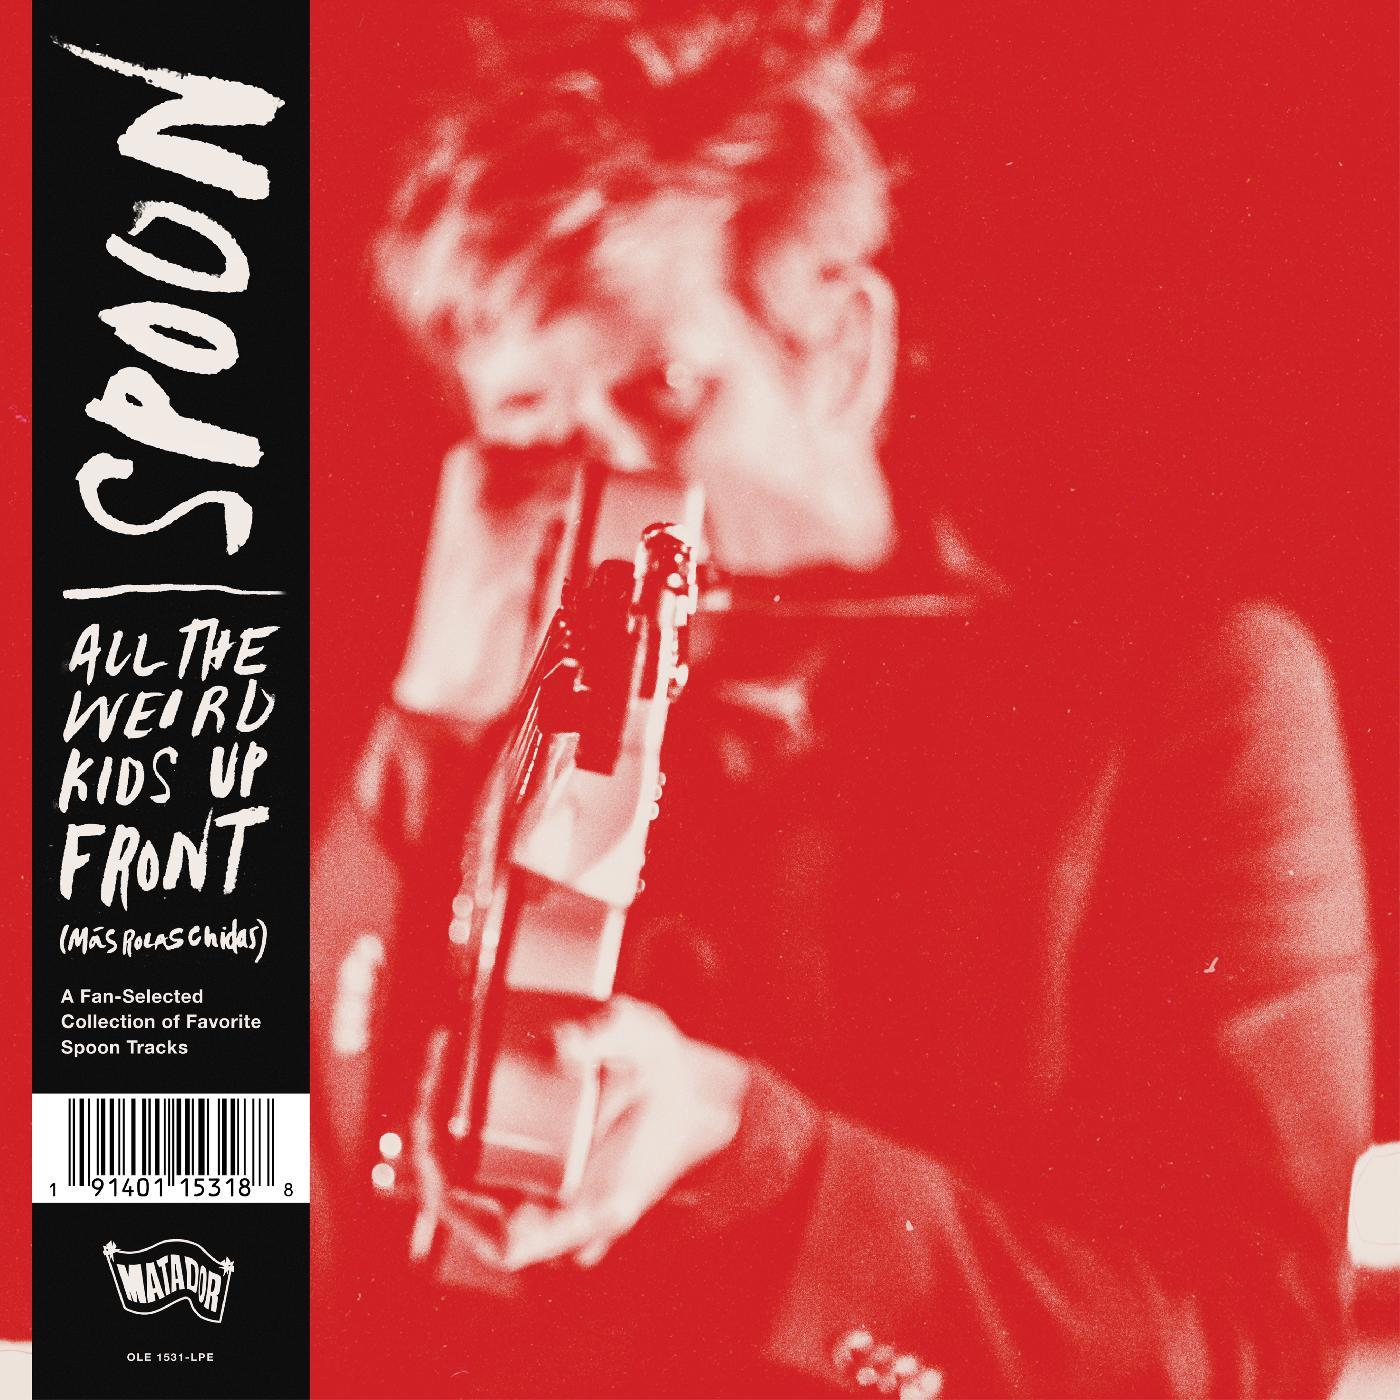 Spoon - All The Weird Kids Up Front (Más Rolas Chidas) [RSD Drops Aug 2020]